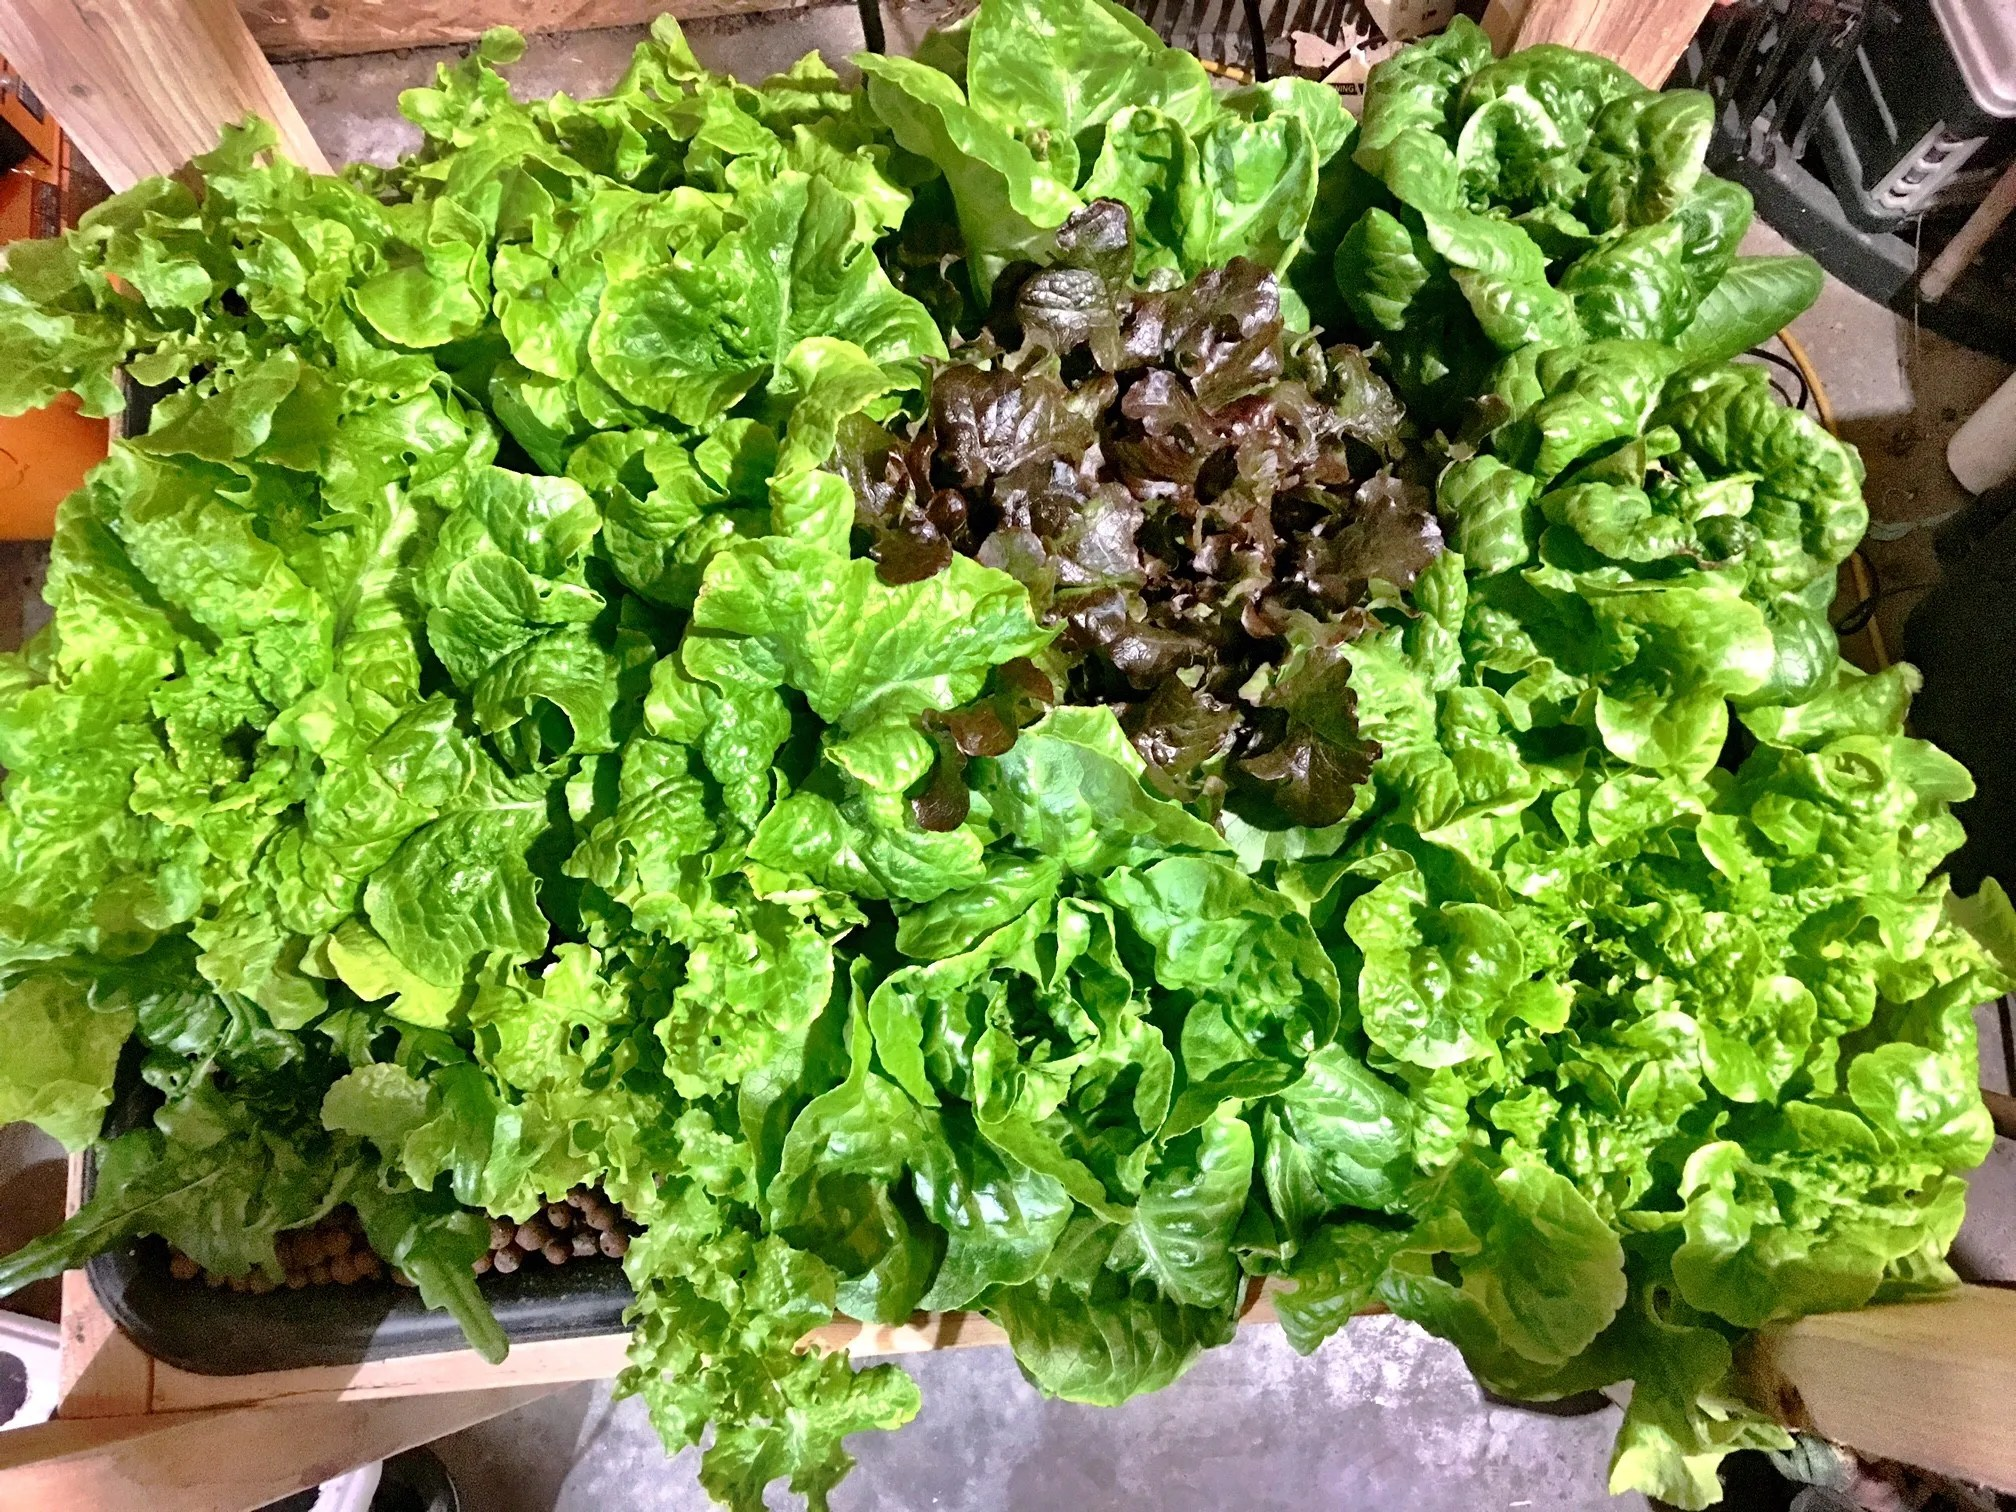 How Much Does A Hydroponic System Cost? - NoSoilSolutions